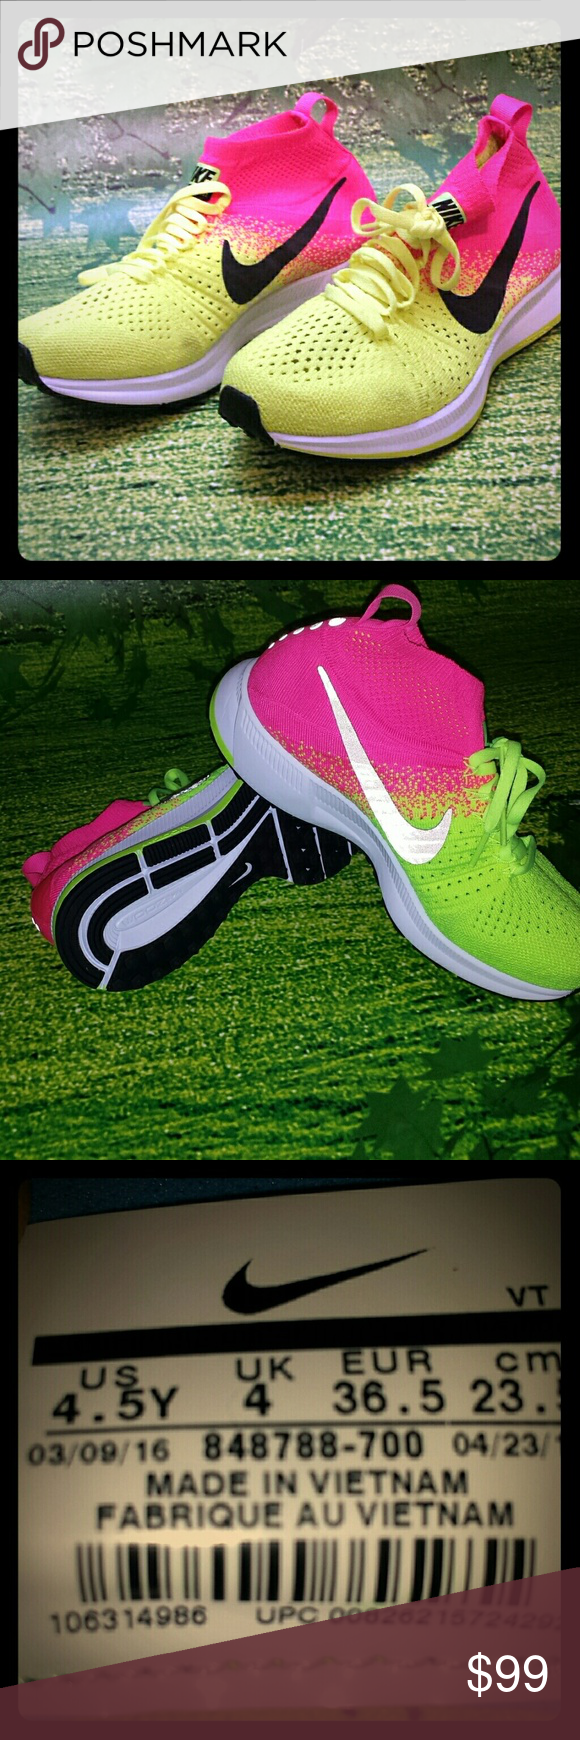 446016592690 Nike Zoom Pegasus All Out Flyknit 4.5Y Sneakers Nike Zoom Pegasus All Out  Flyknit 4.5